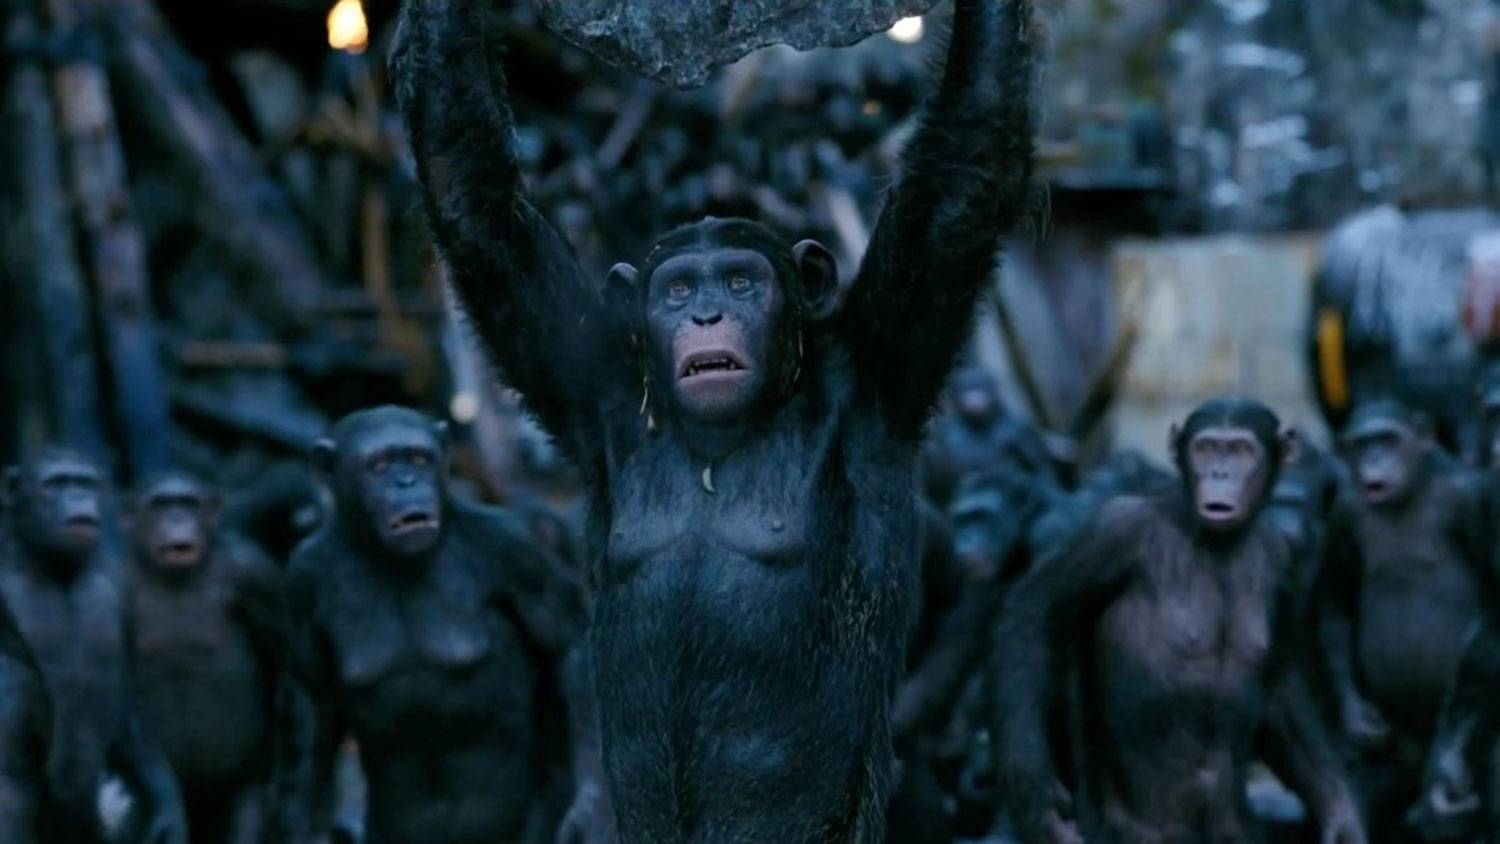 Box office hits and misses: 'Planet of the Apes' rules as 'Spider-Man' takes a dive